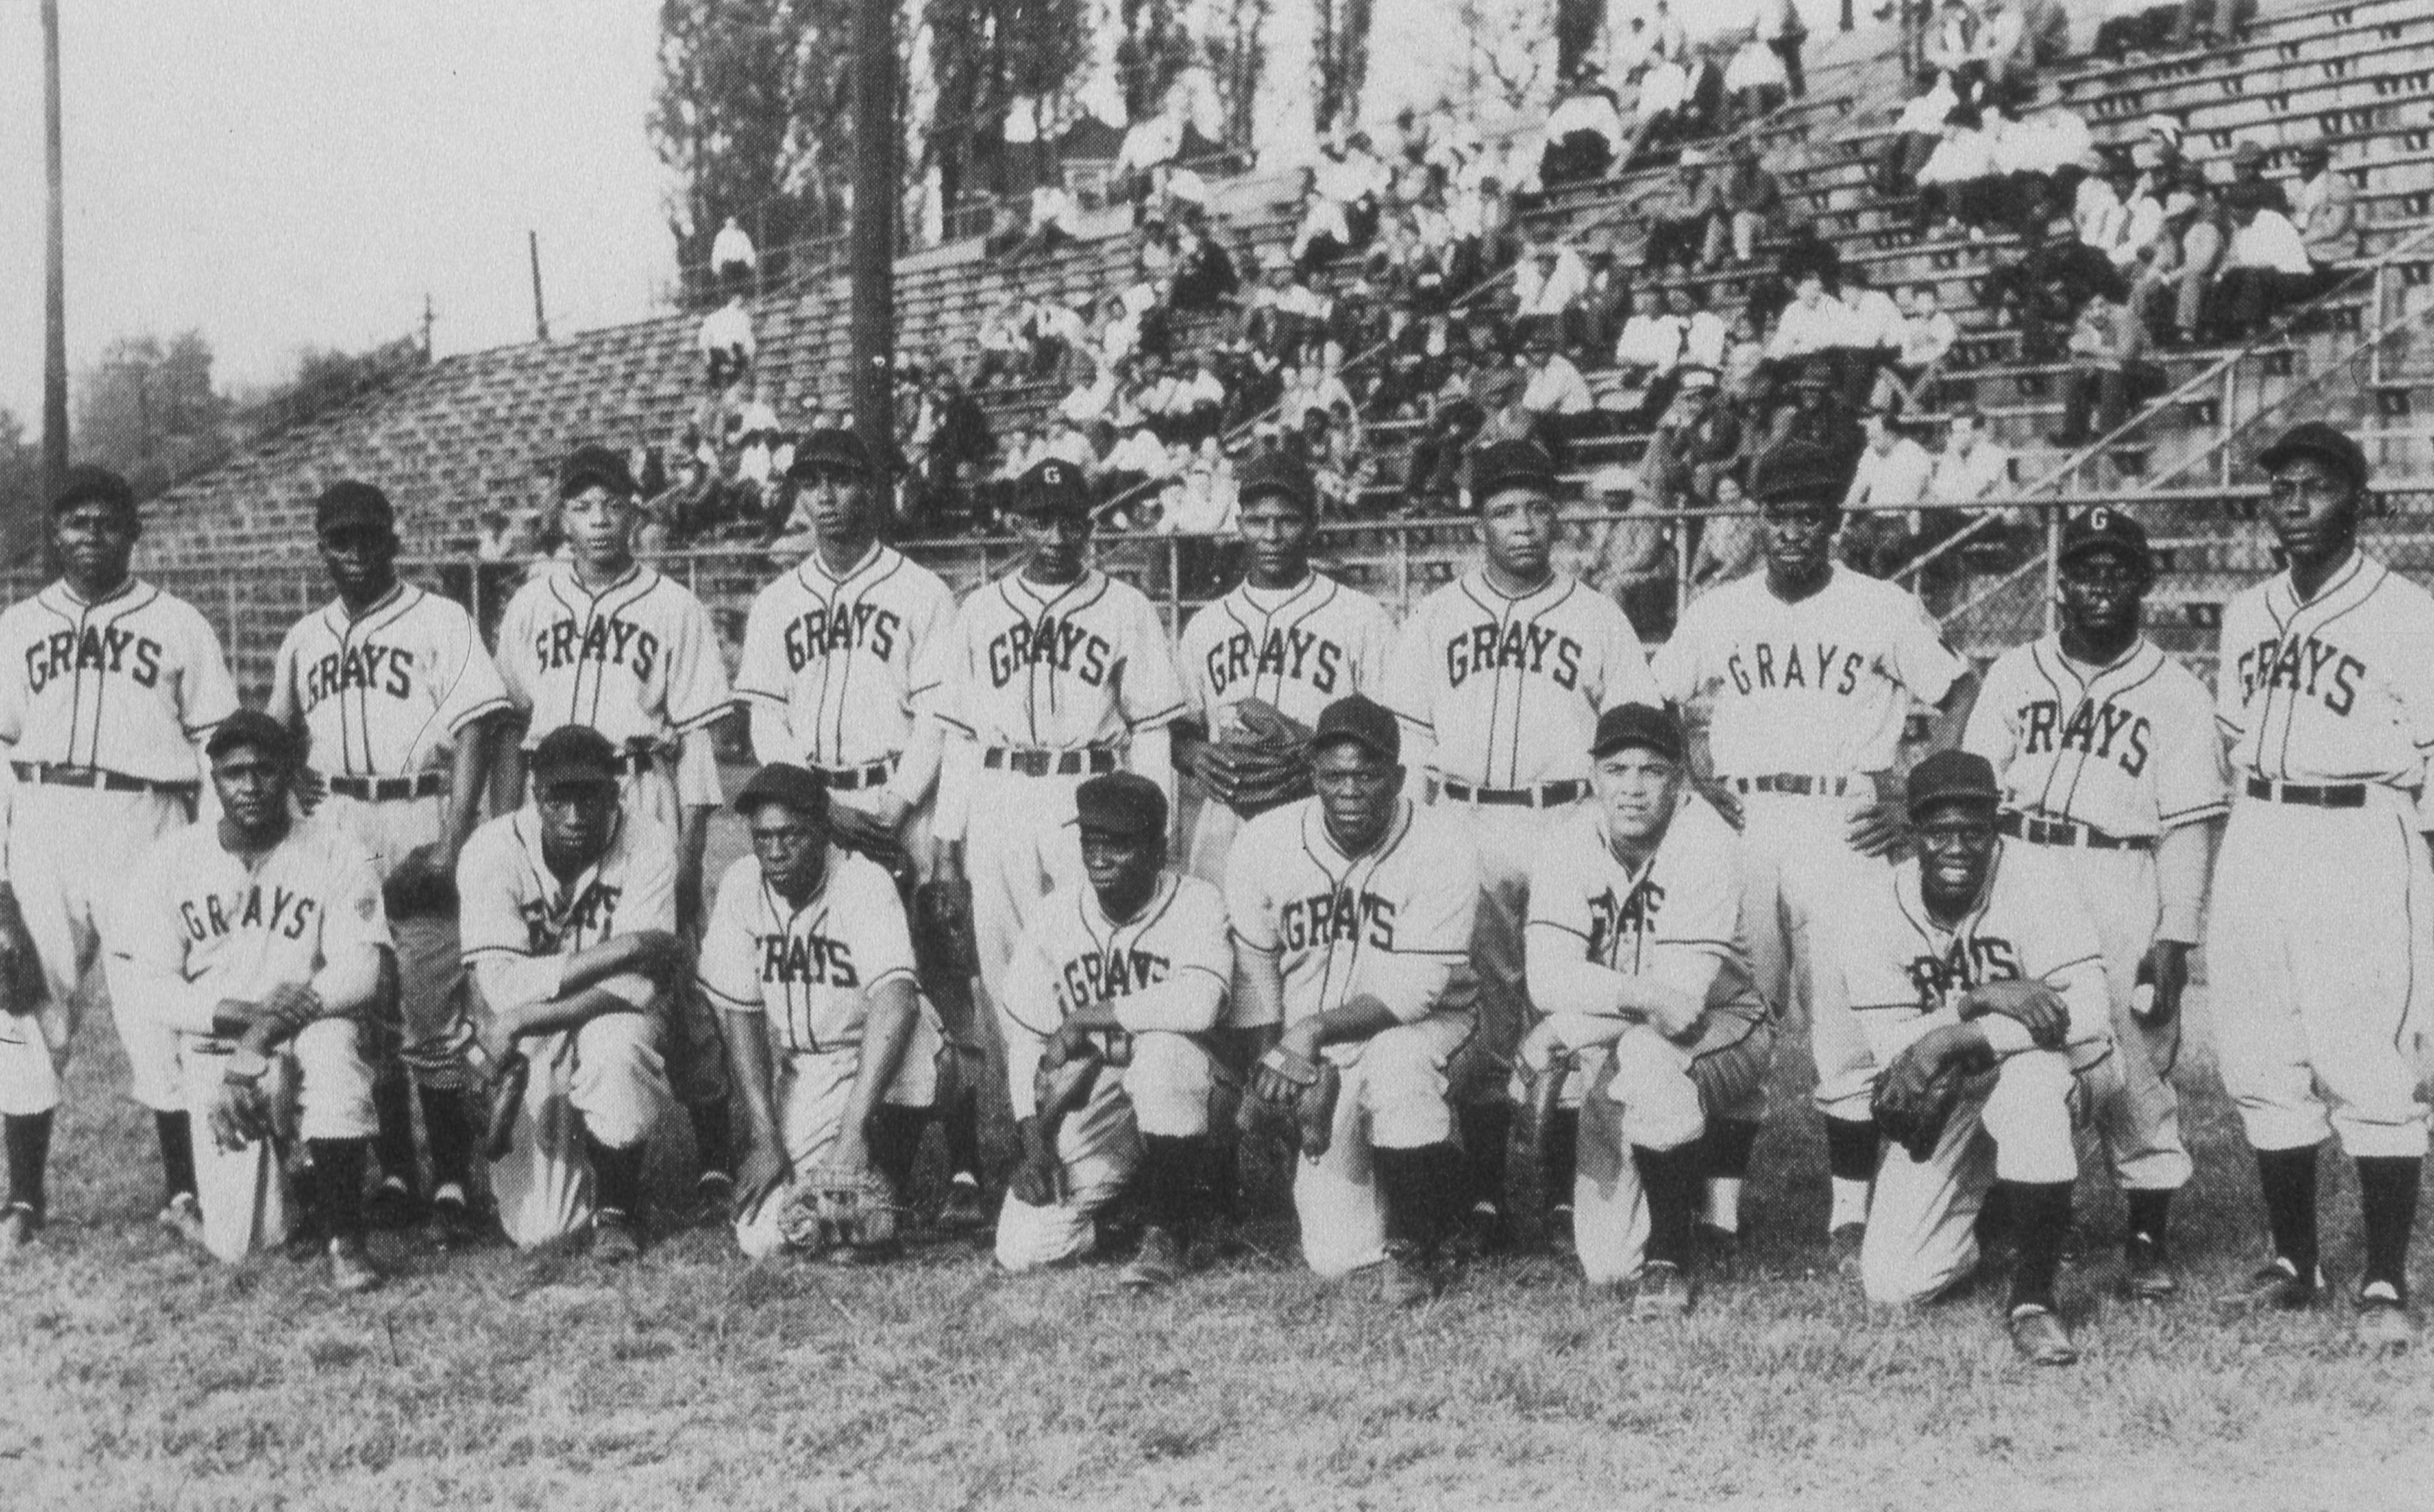 The Homestead Grays of Pittsburgh, PA, pose for a 1948 team portrait in Pittsburgh.